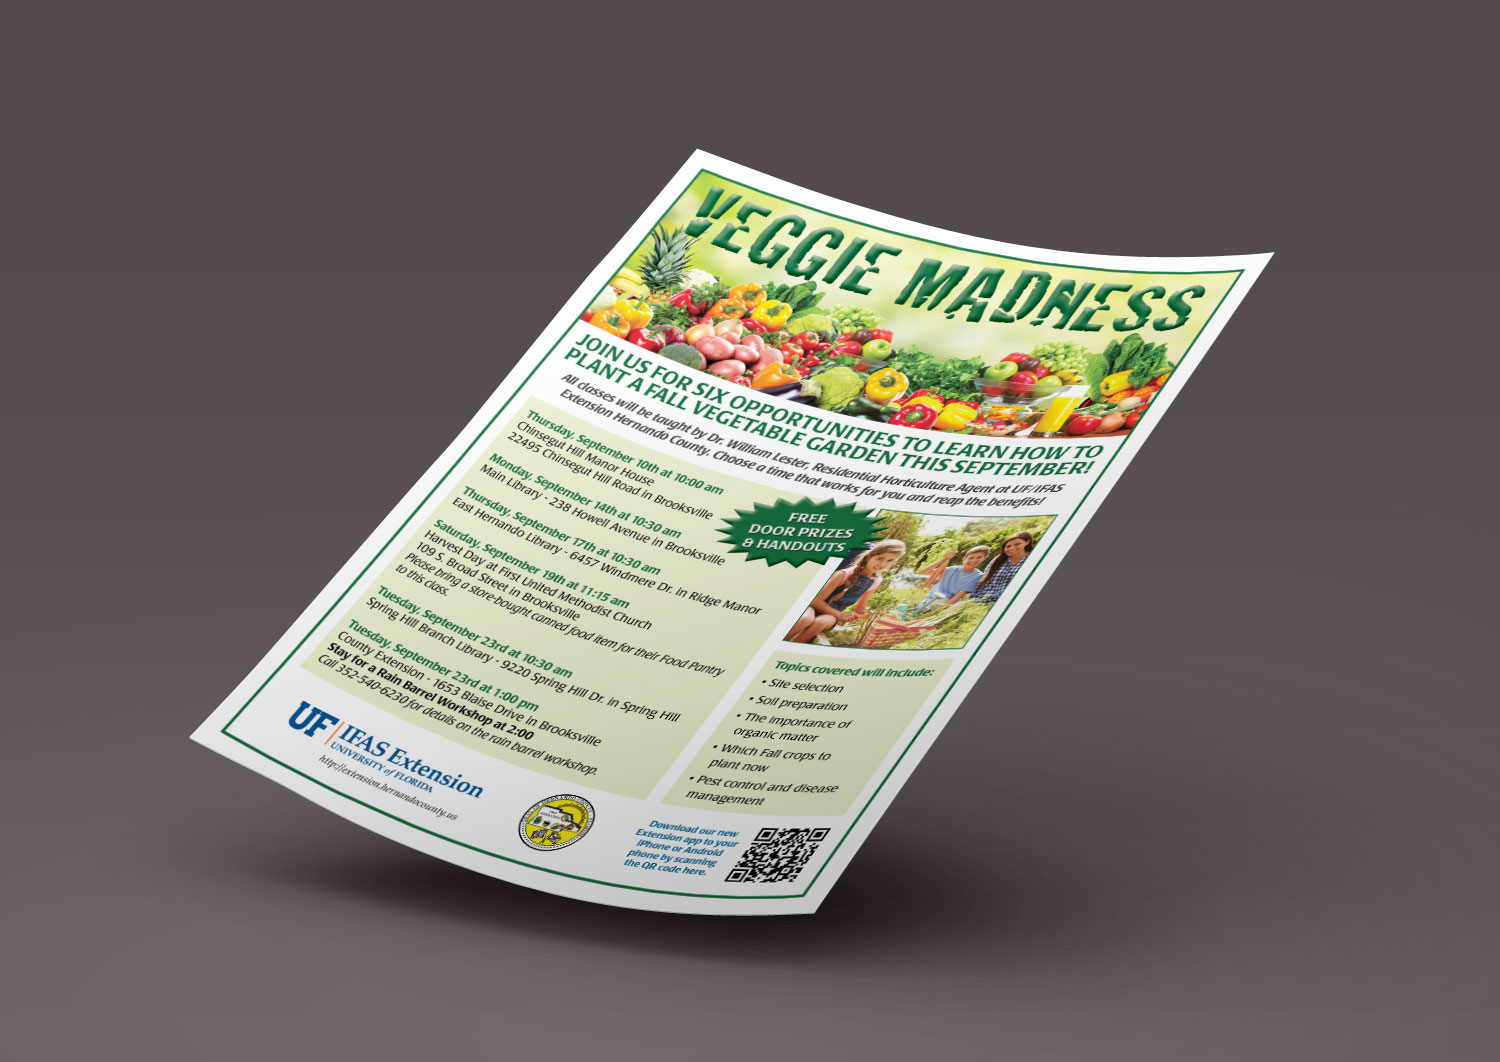 University of Florida Veggie Madness Flyer Printing